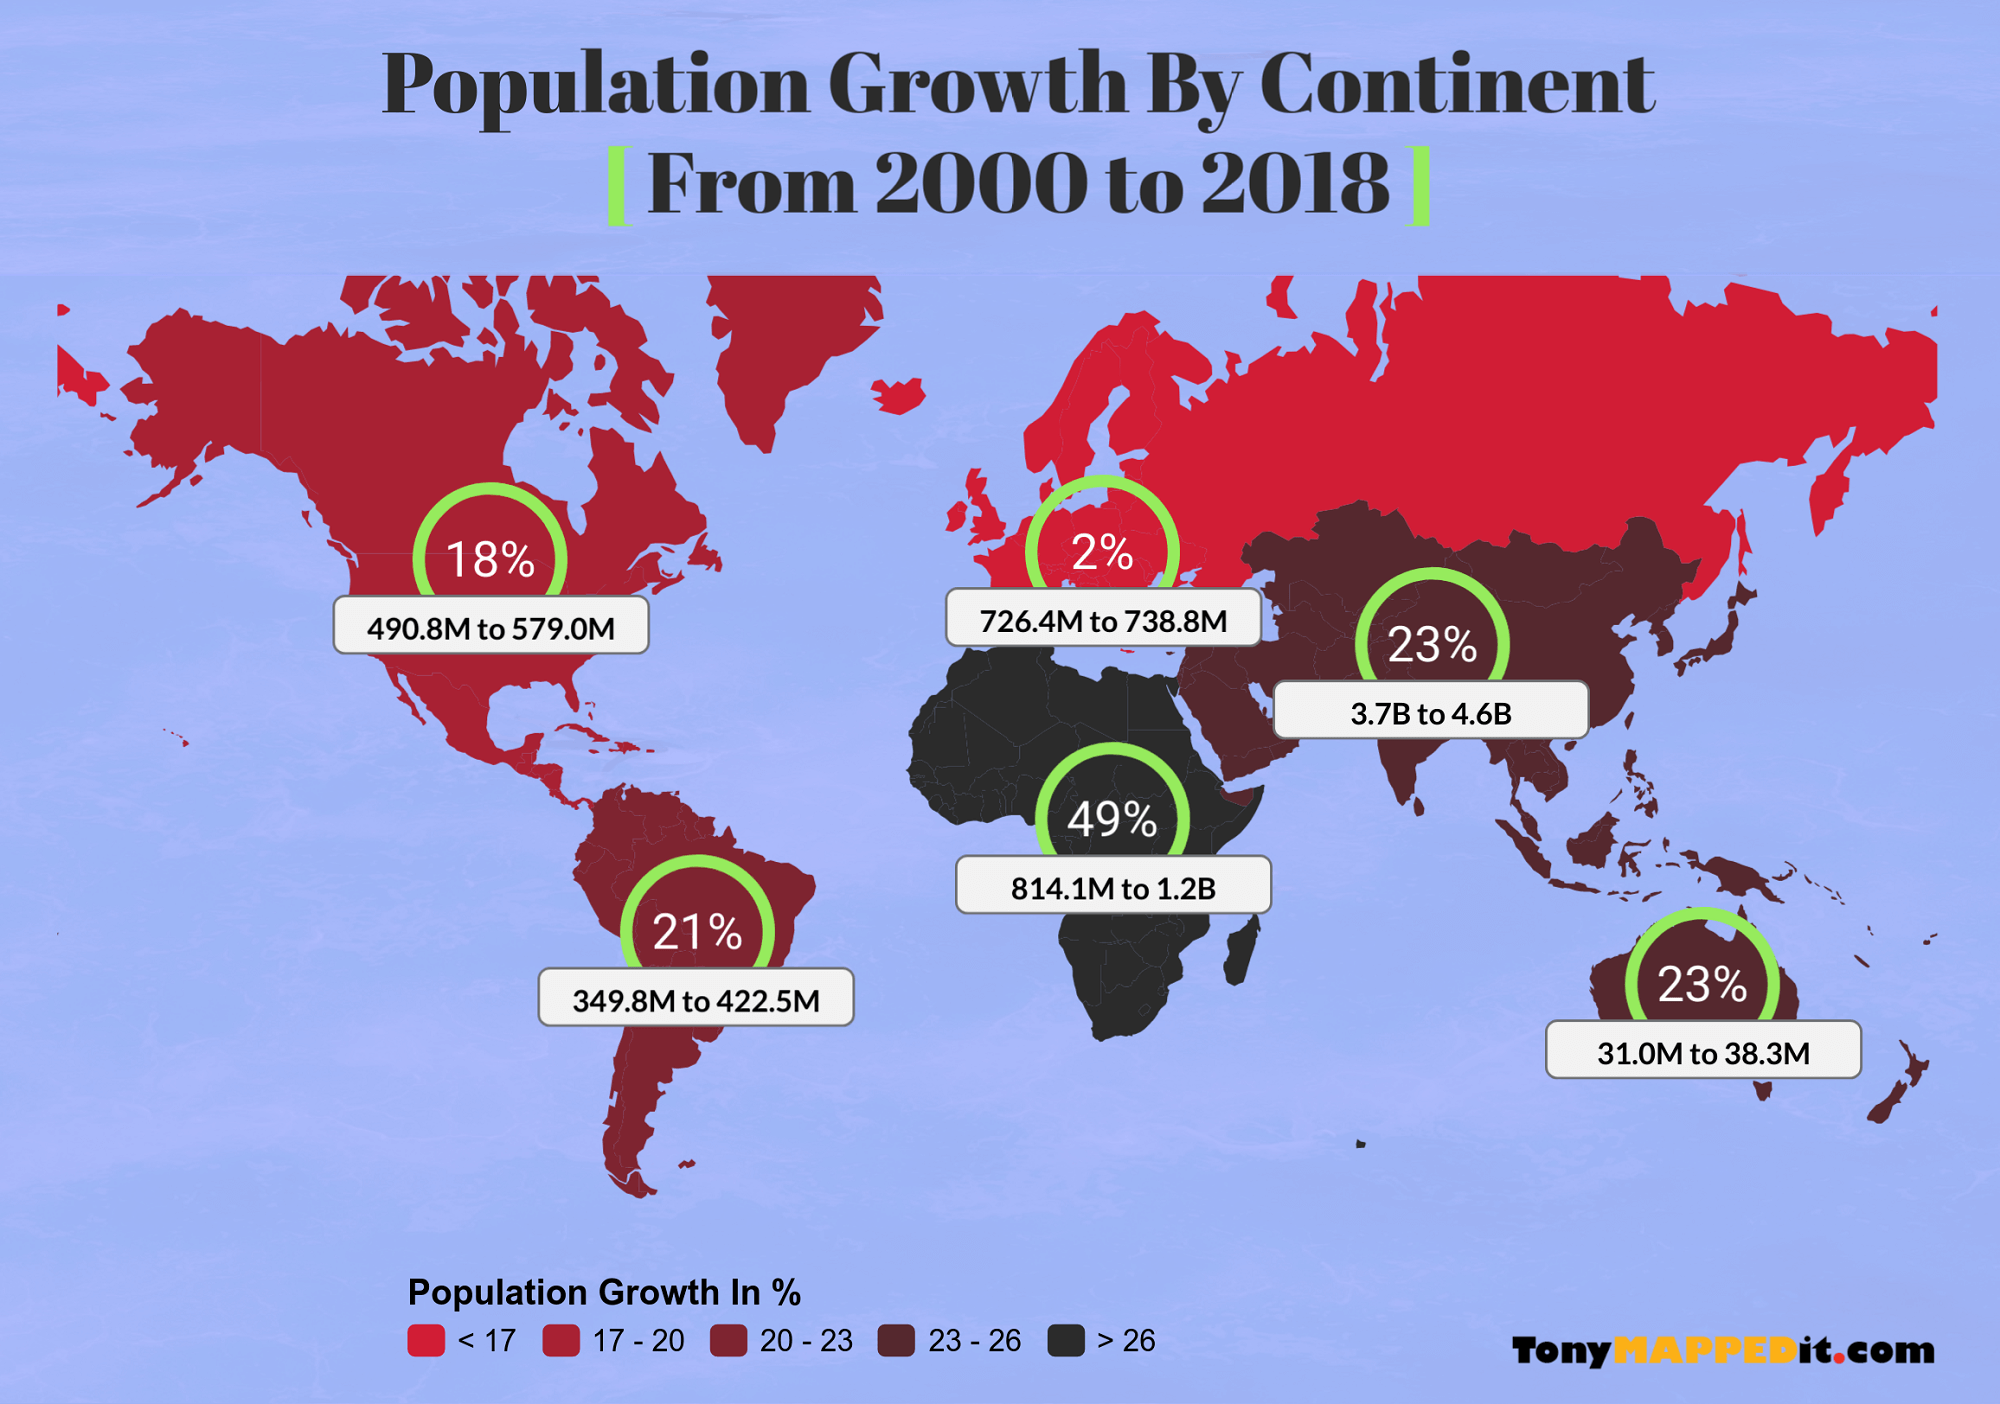 Population Growth Per Continent From 2000 to 2018